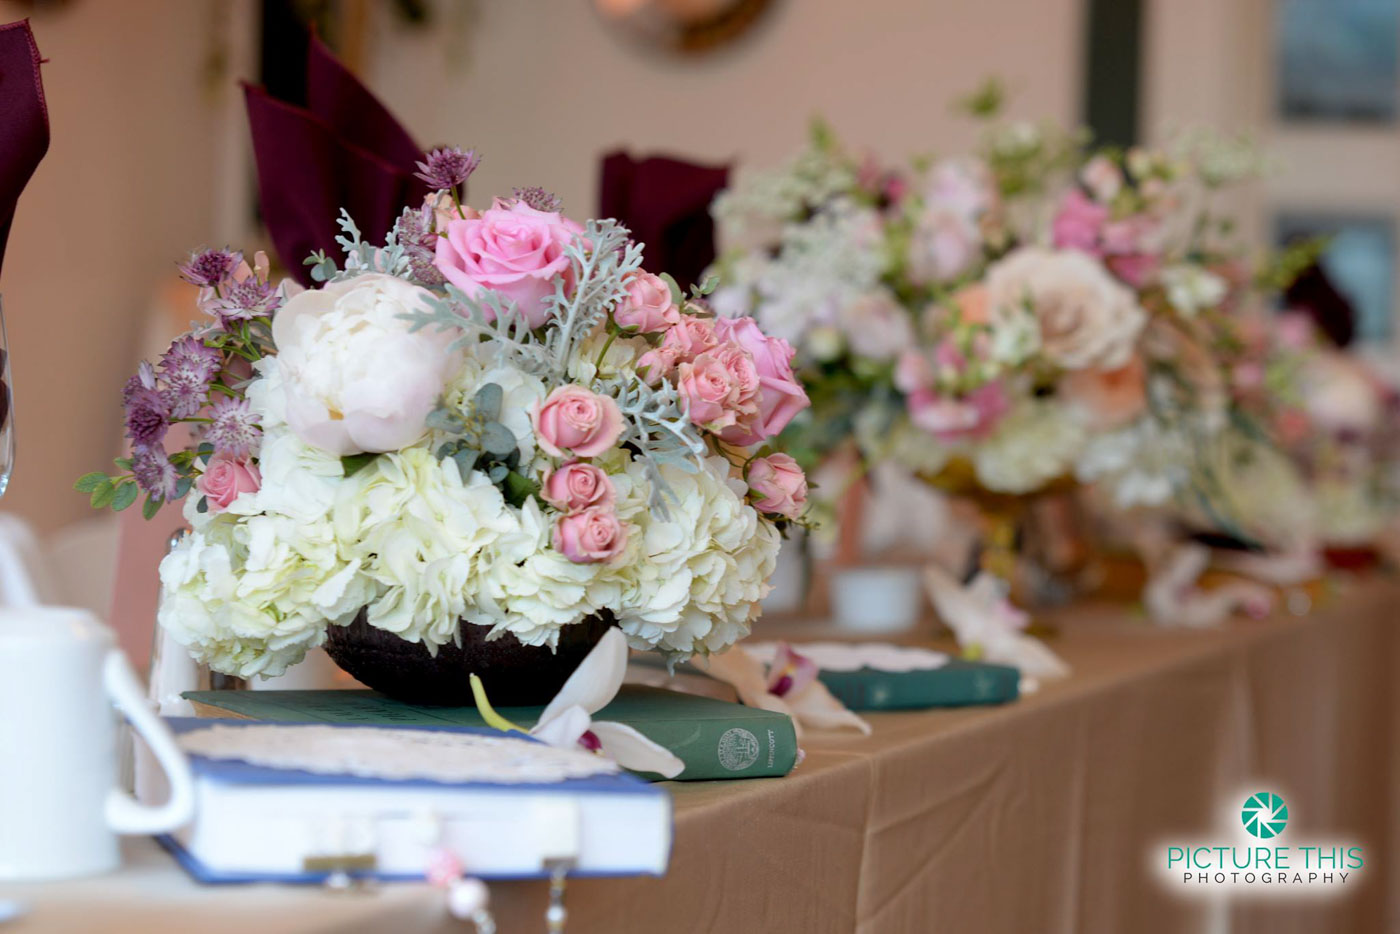 immaculate-alumni-wedding-head-table-decorations